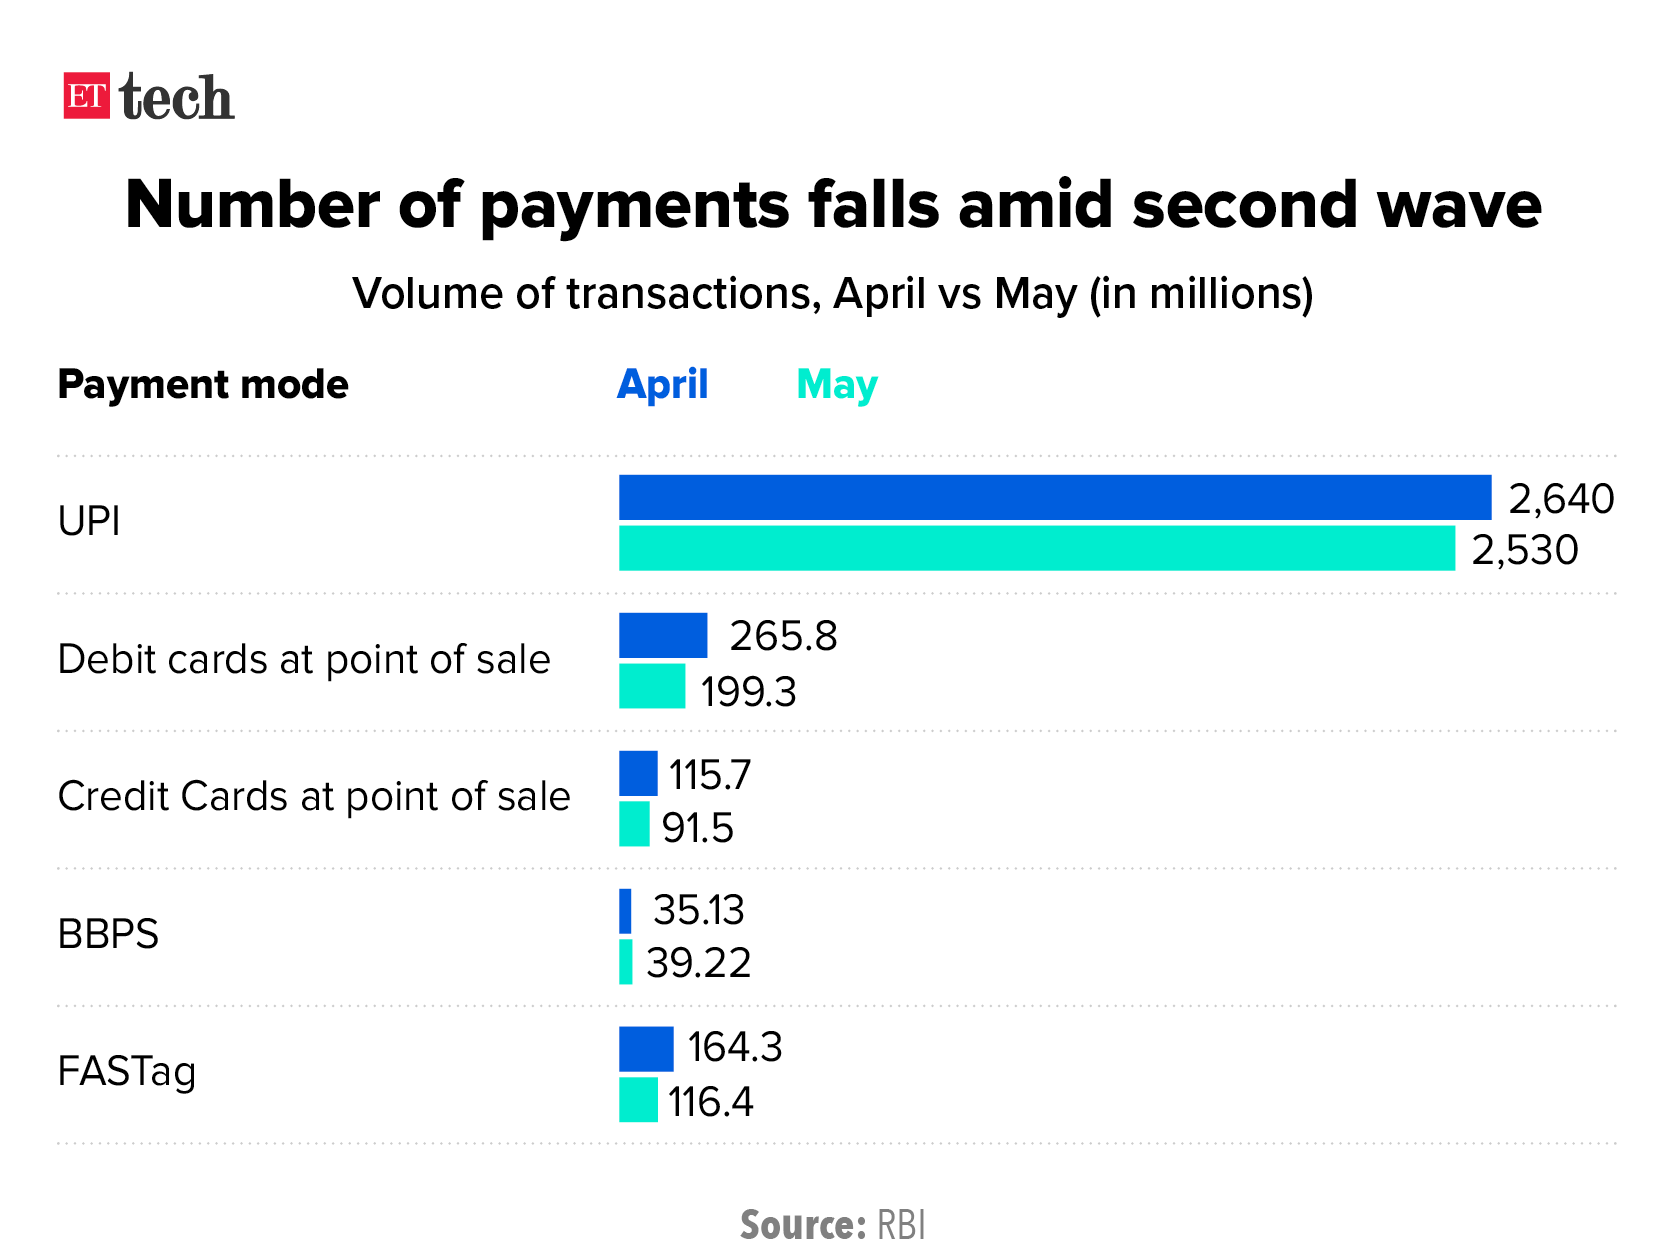 Number of payments falls amid second wave